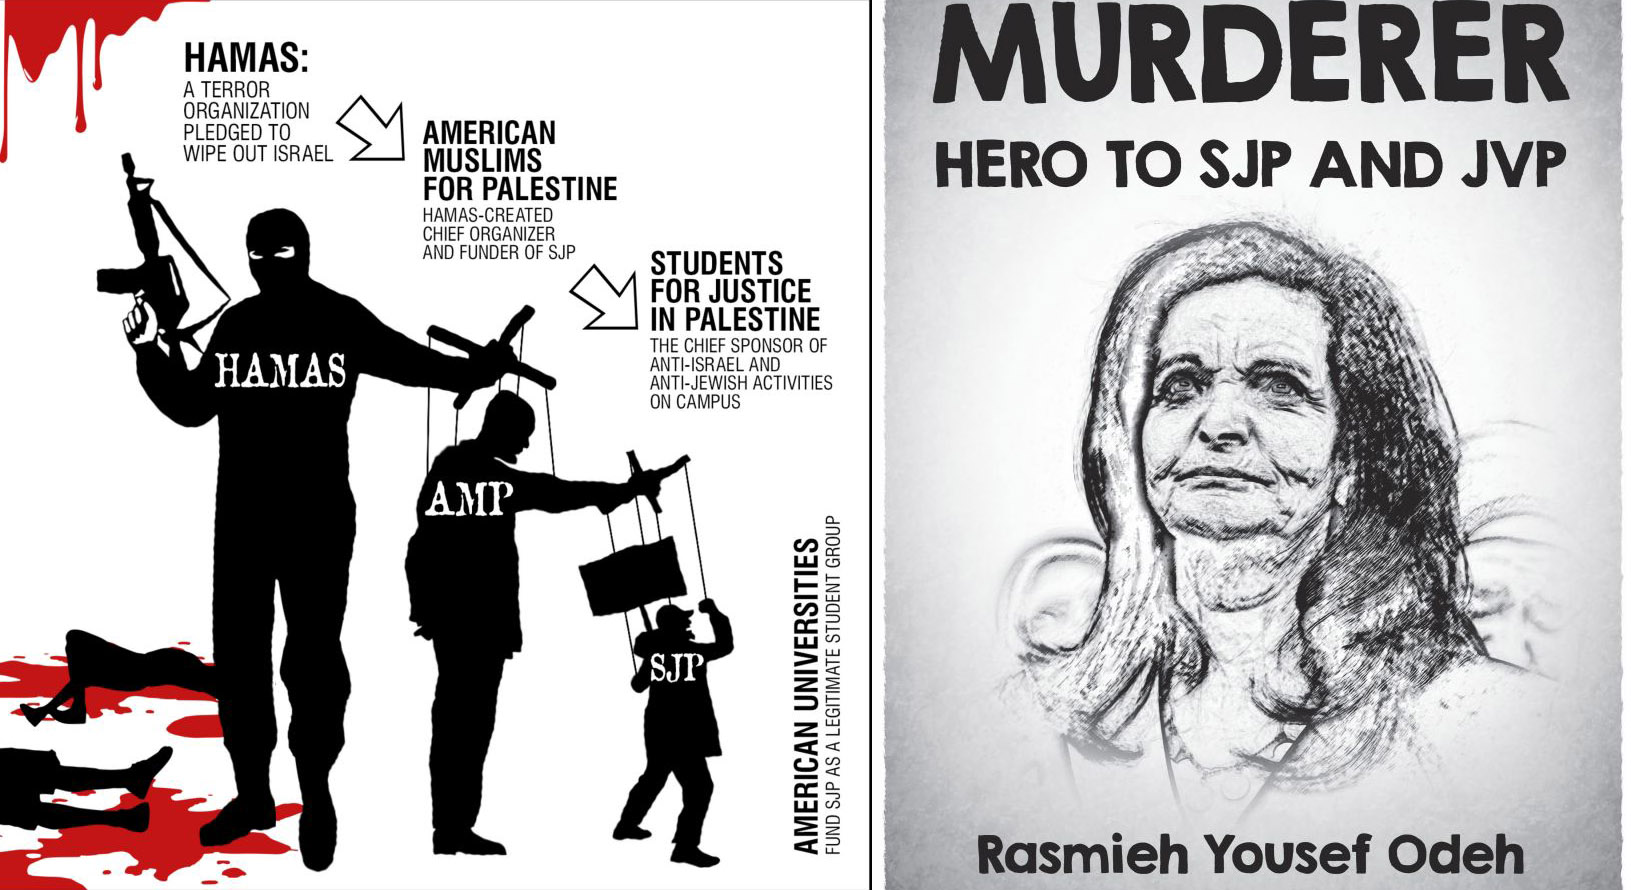 """One of the posters shows Hamas as puppet master for left-wing groups. the other poster shows Rasmea Odeh and says """"Murderer: Hero to SJP and JVP"""""""